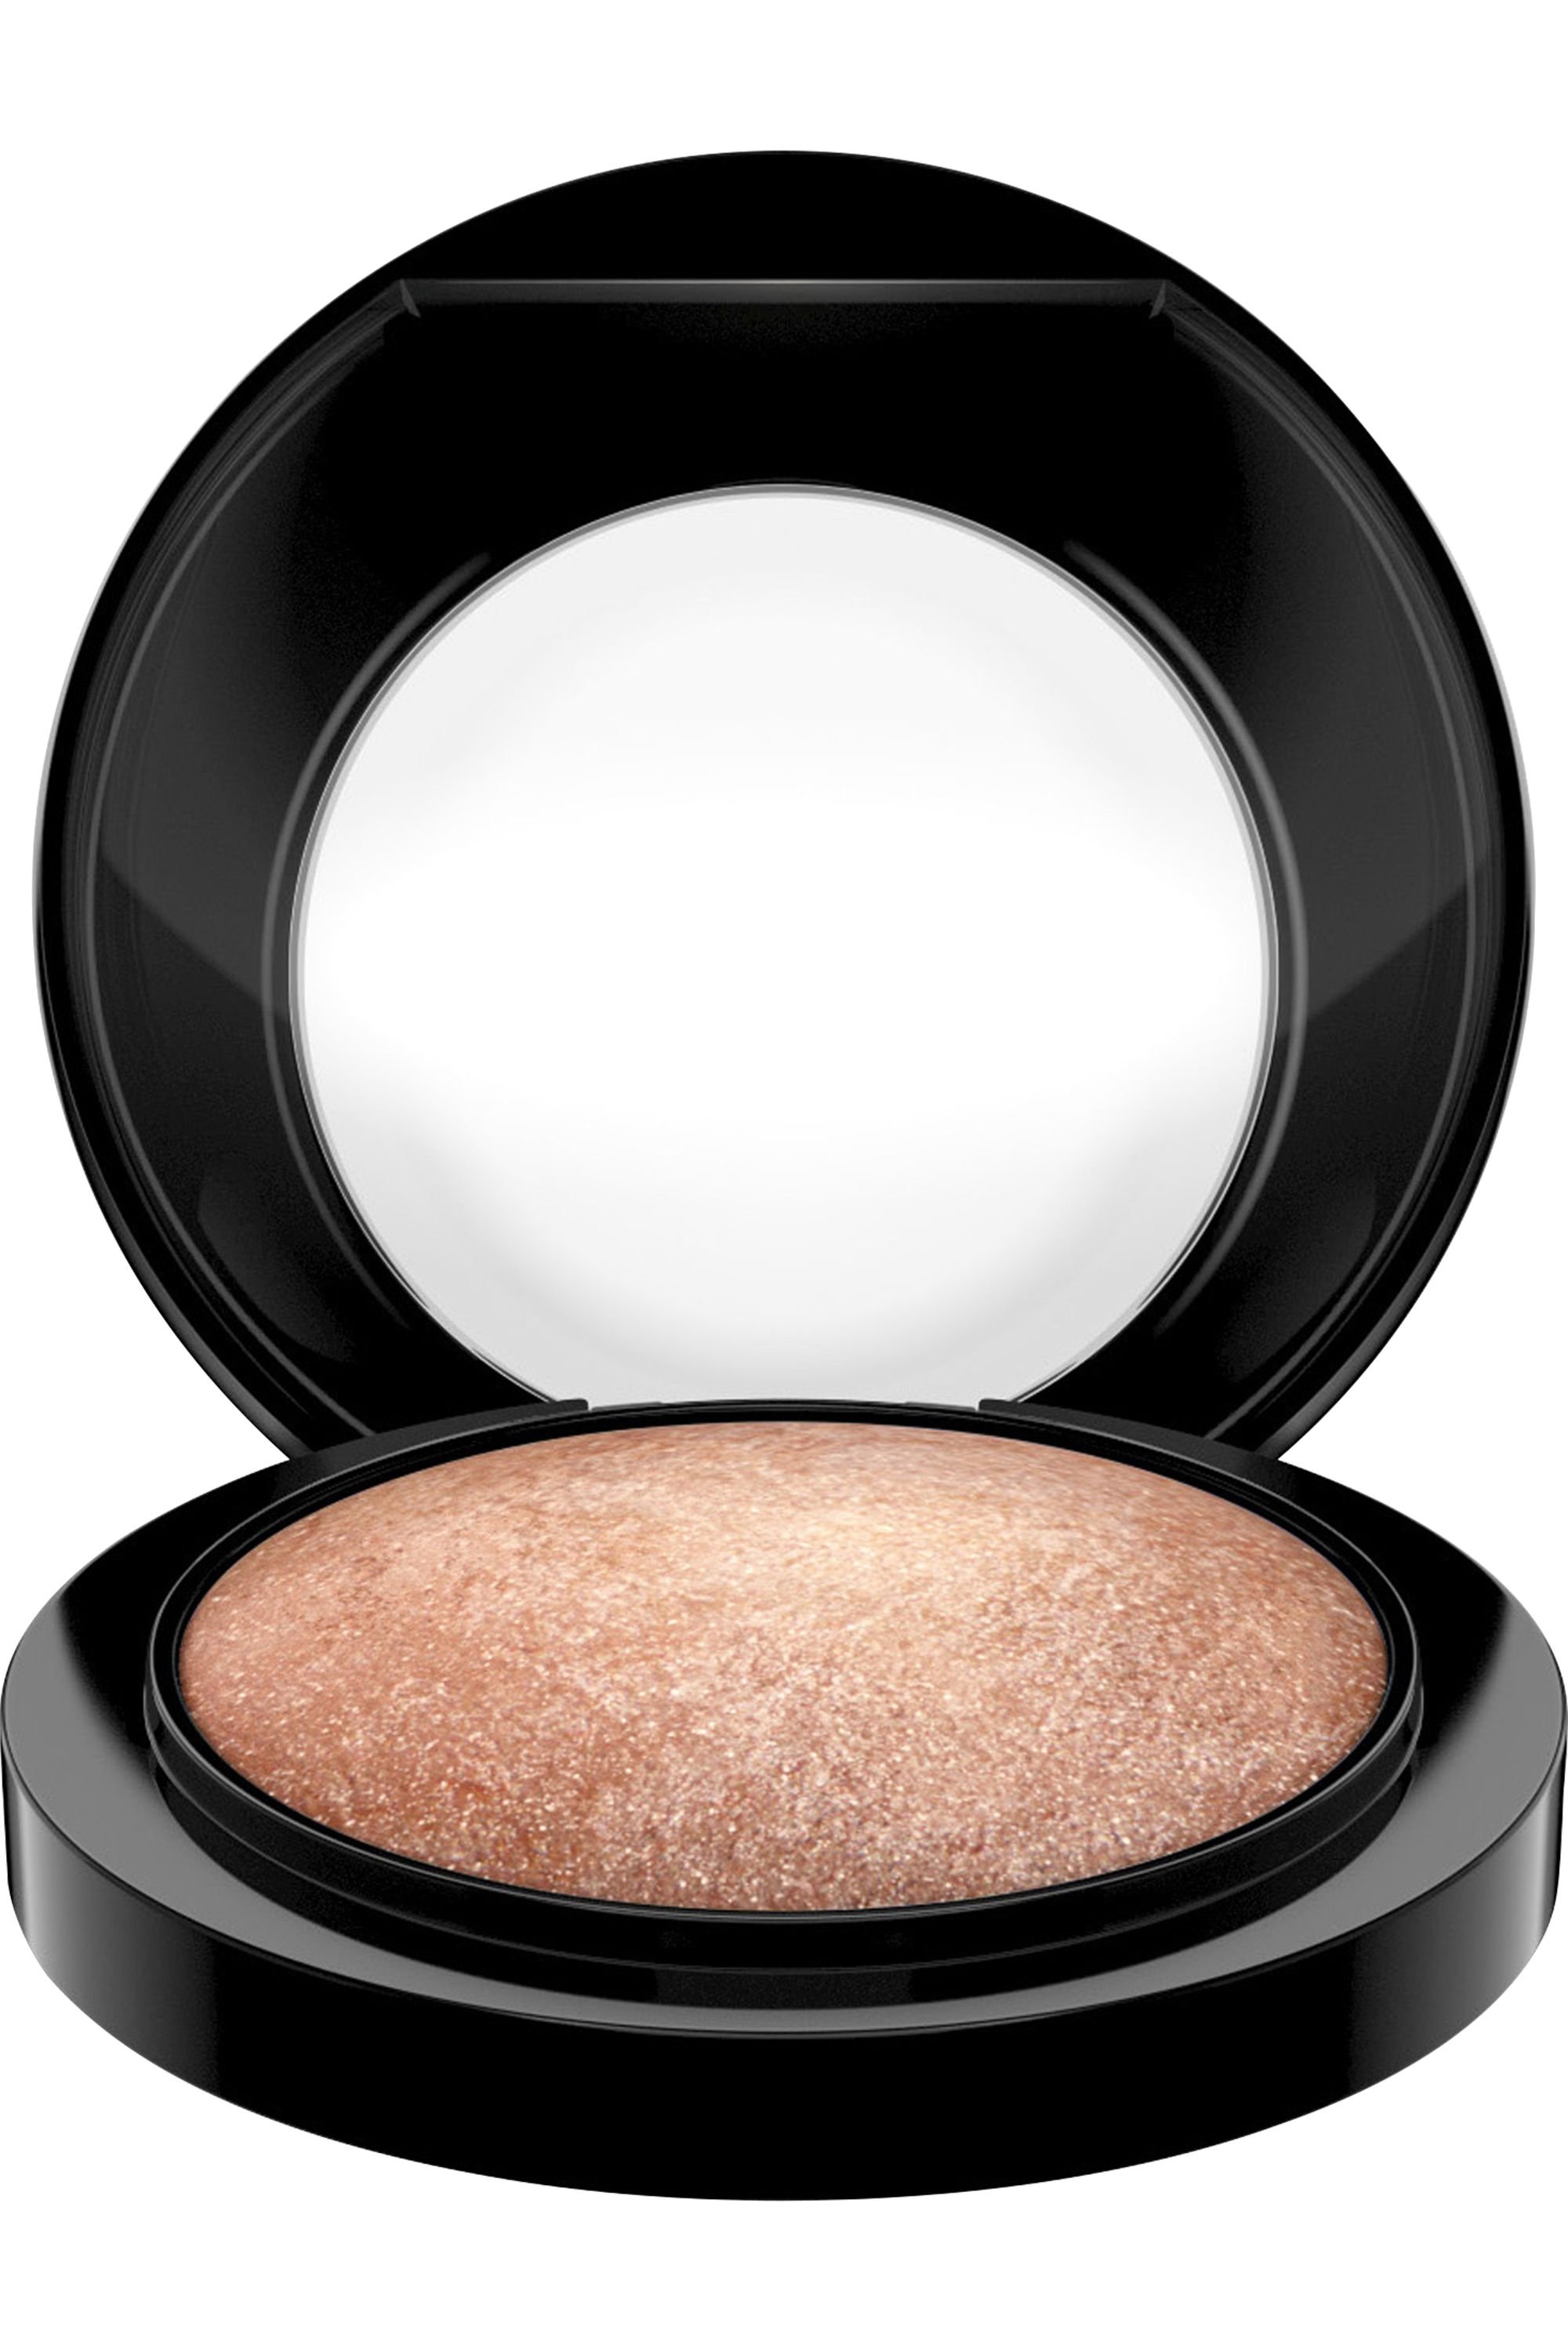 Blissim : M.A.C - Poudre Compacte Mineralize Skinfinish - Global Glow